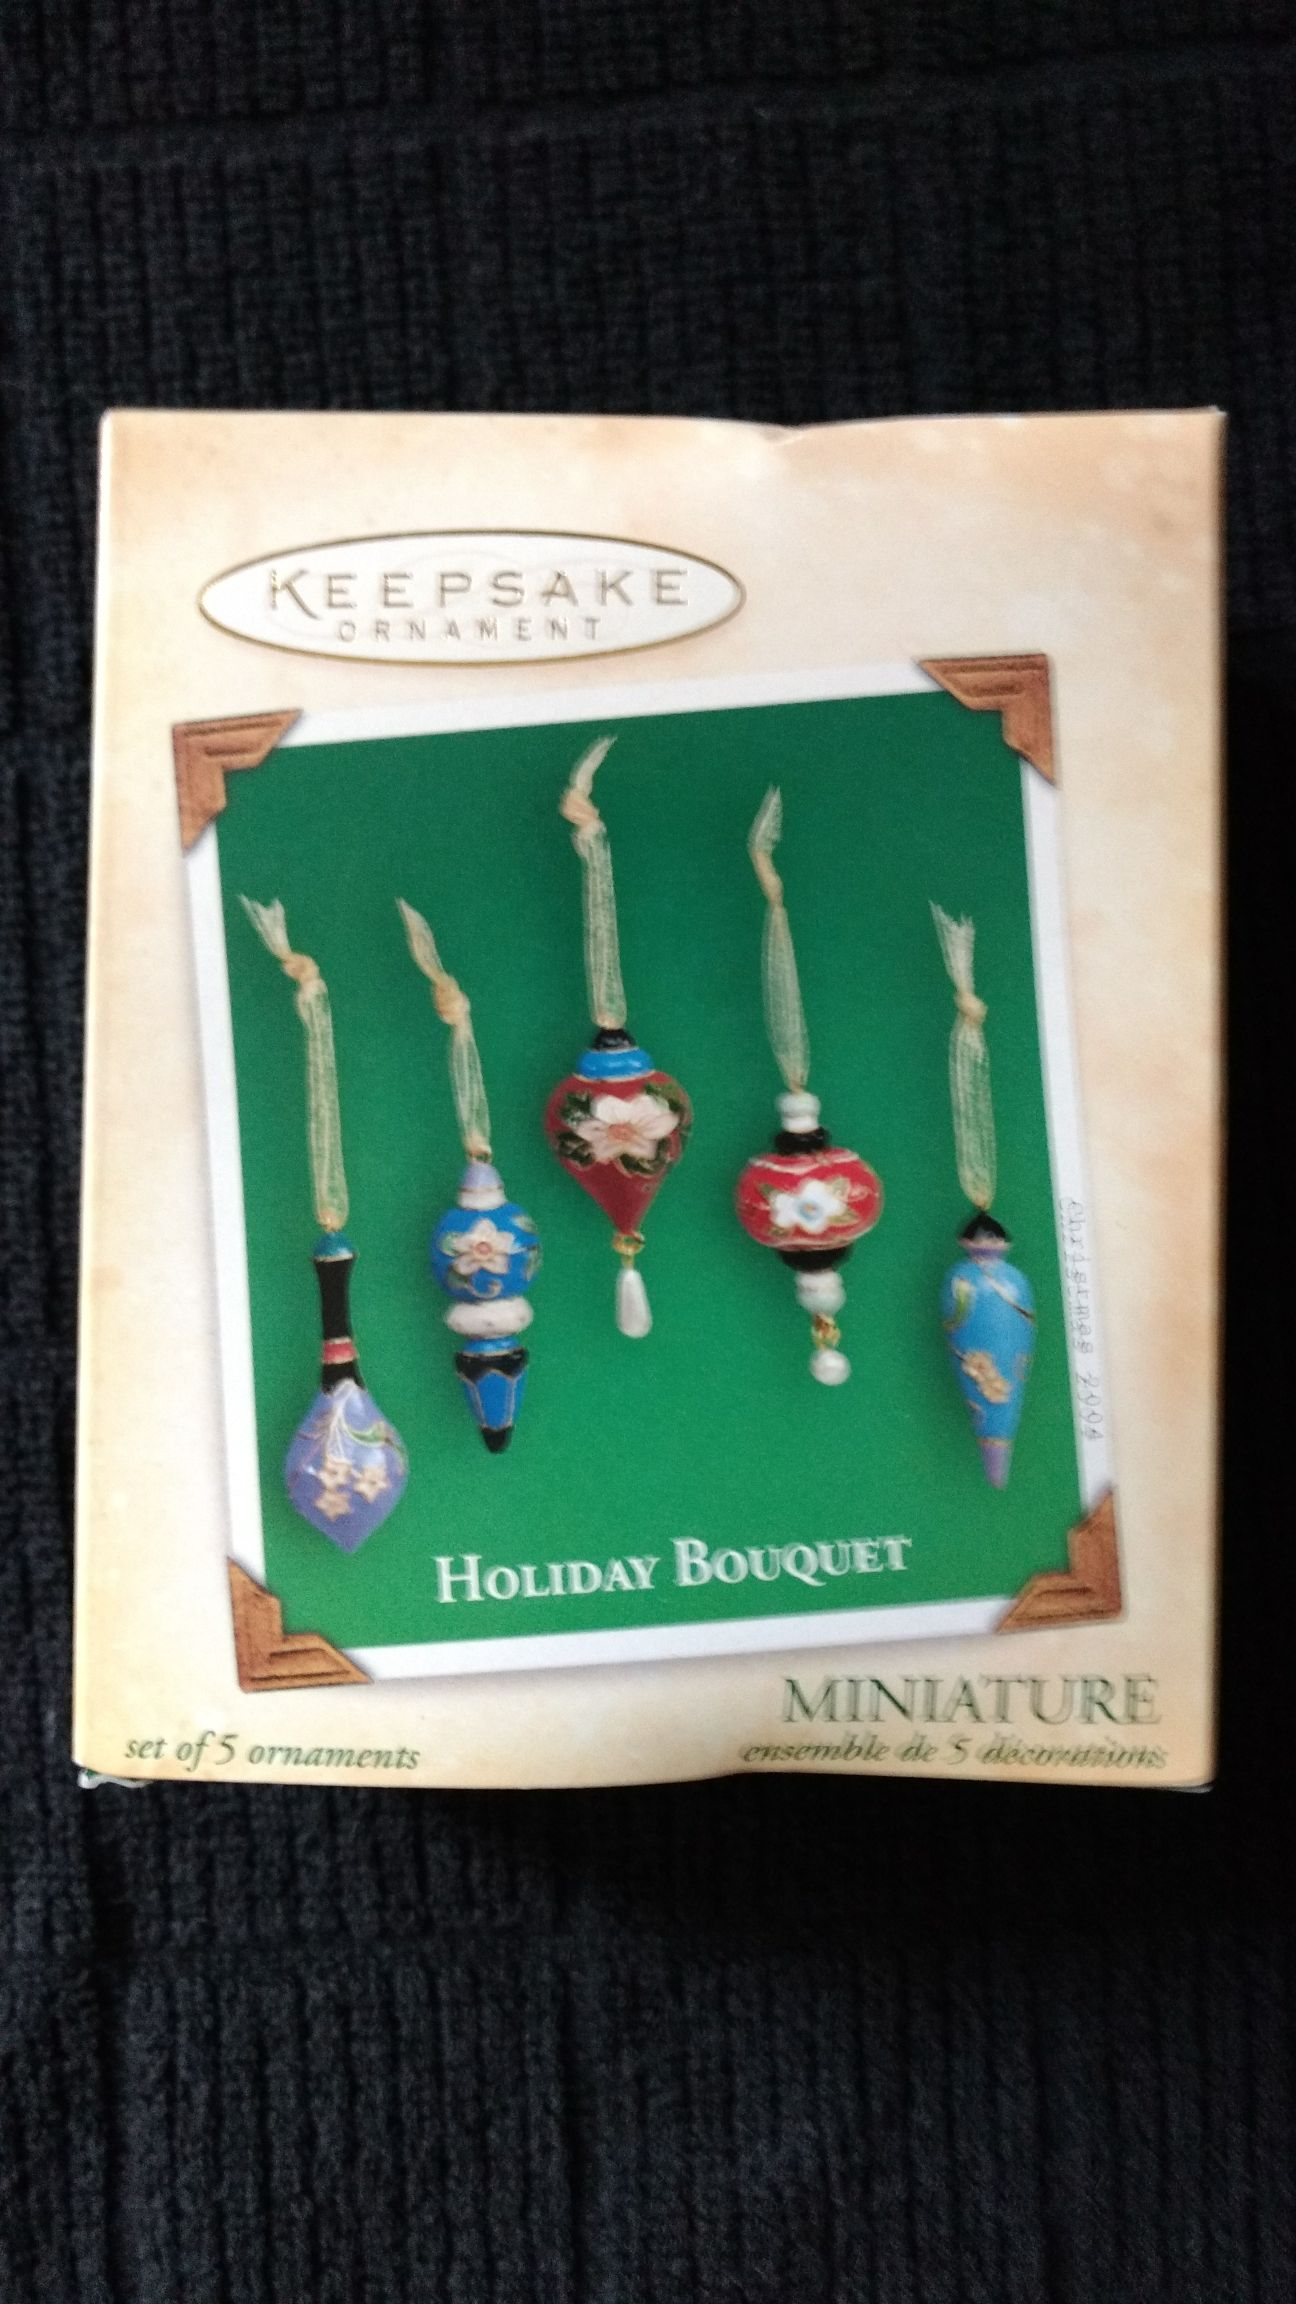 Holiday Bouquet Ornament (2004) front image (front cover)